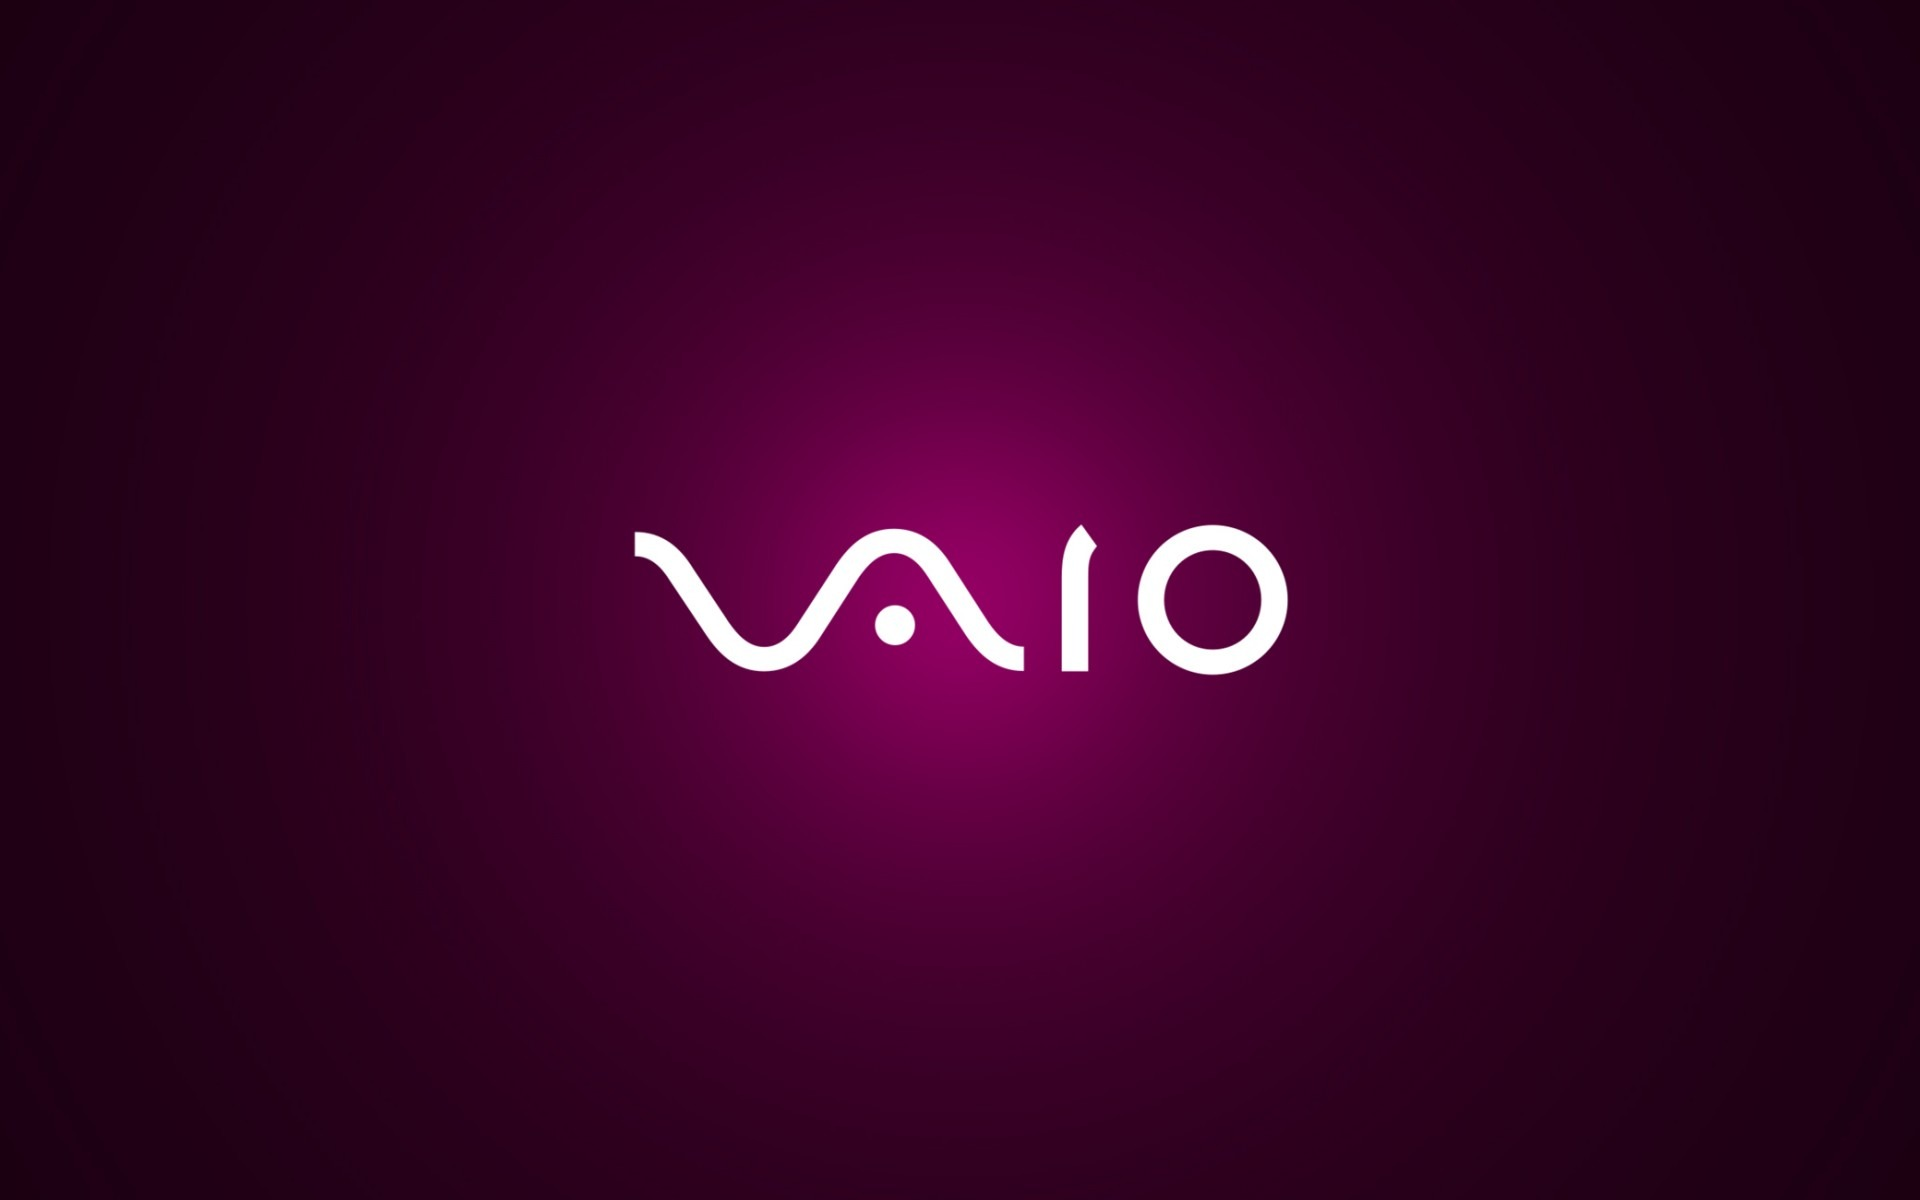 vaio backgrounds 9